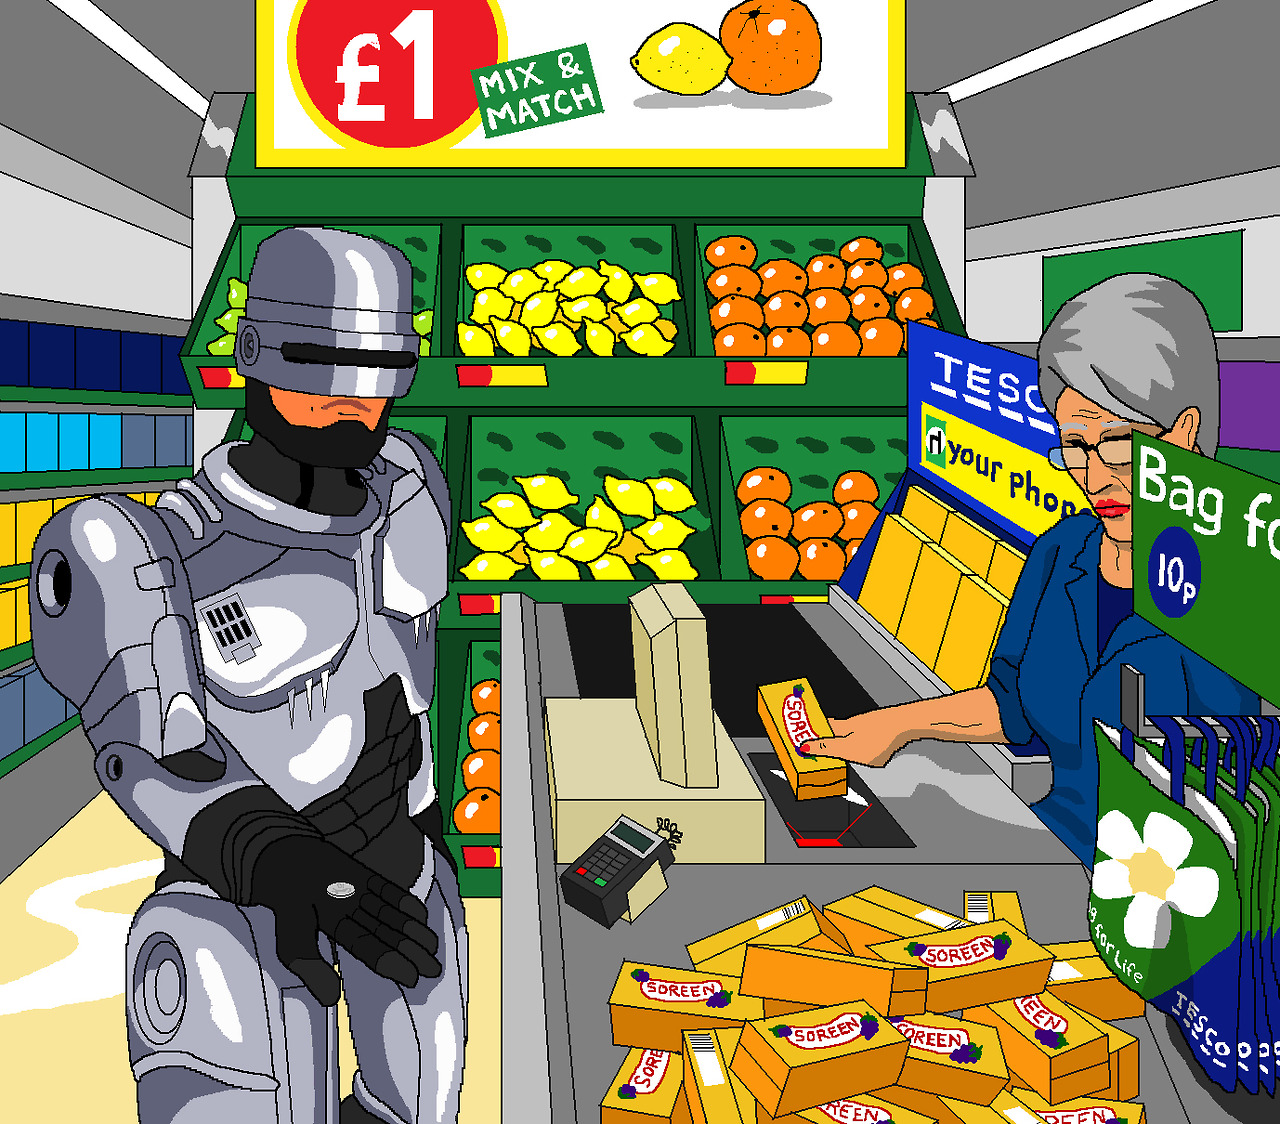 Jim'll Paint it - Robocop at the checkout in Tesco